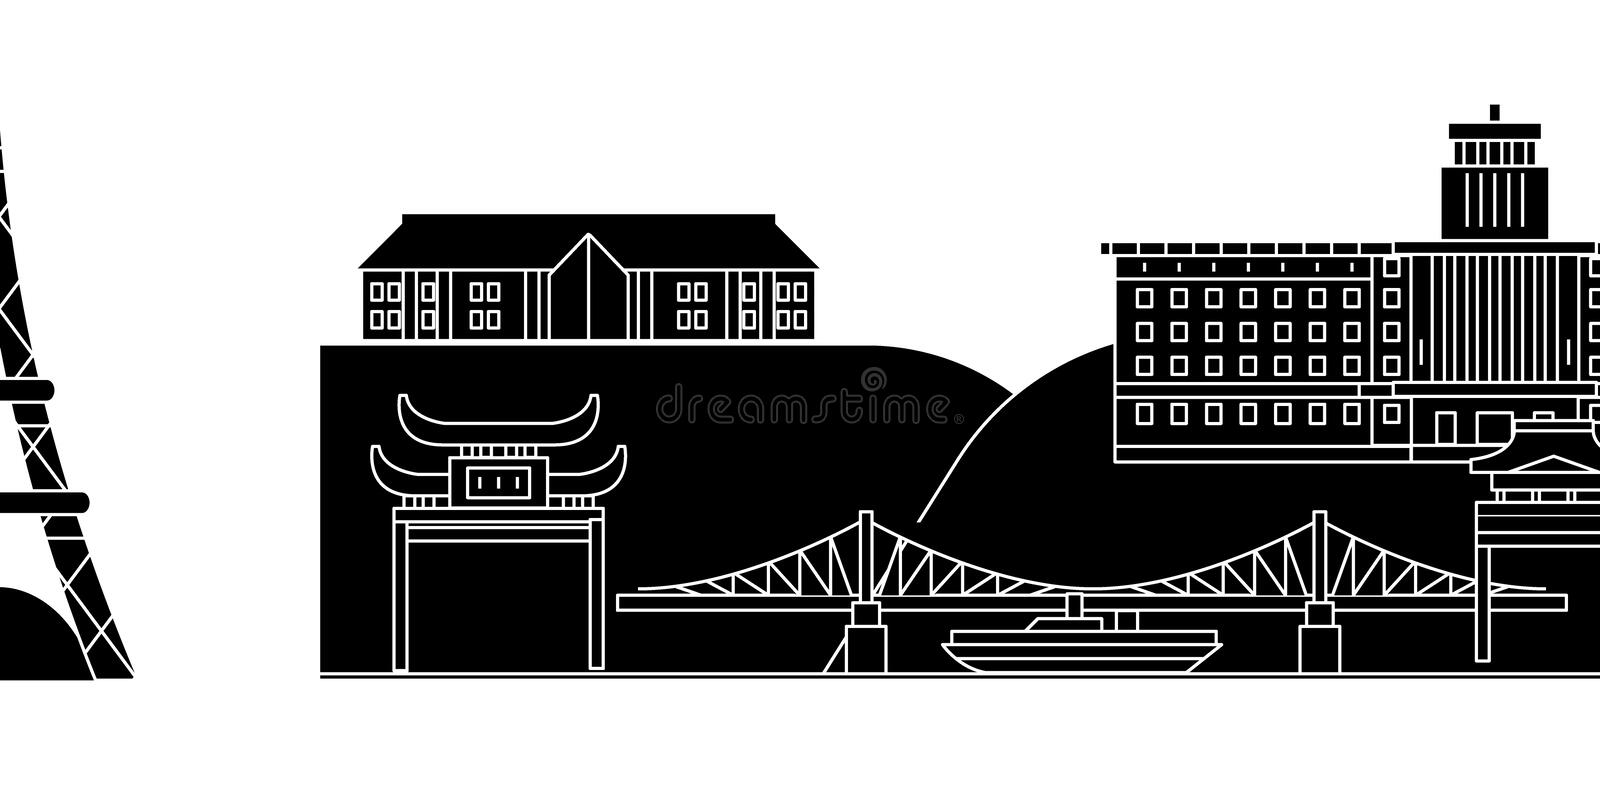 Japan, Yokohama architecture vector city skyline. Black cityscape with landmarks, isolated sights on background stock illustration